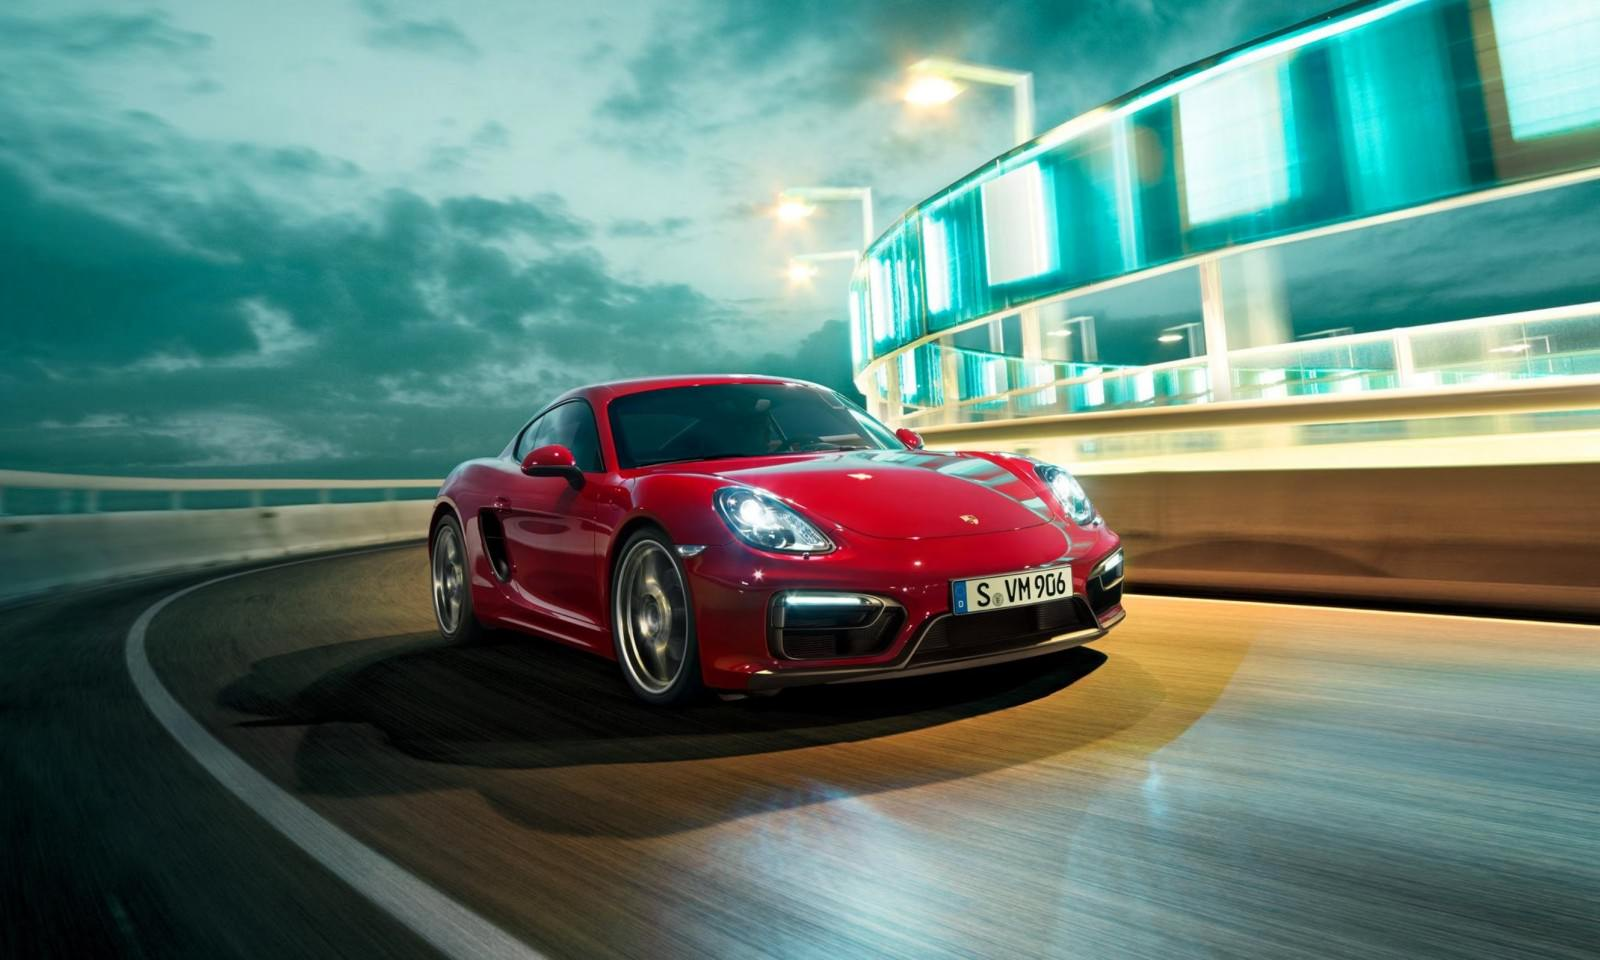 2015 Porsche Boxster and Cayman GTS 8